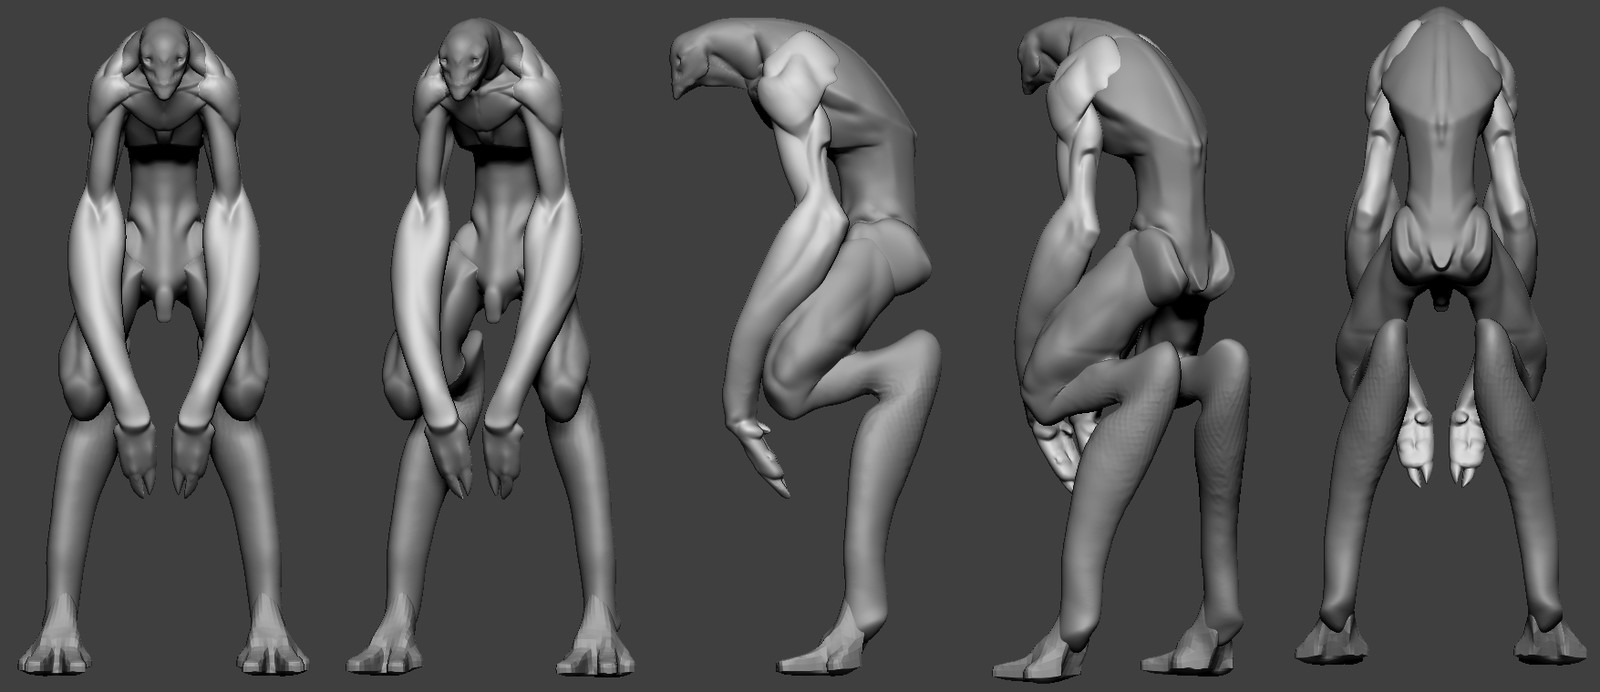 Started with concept and blocking things out.. (Class 1a)